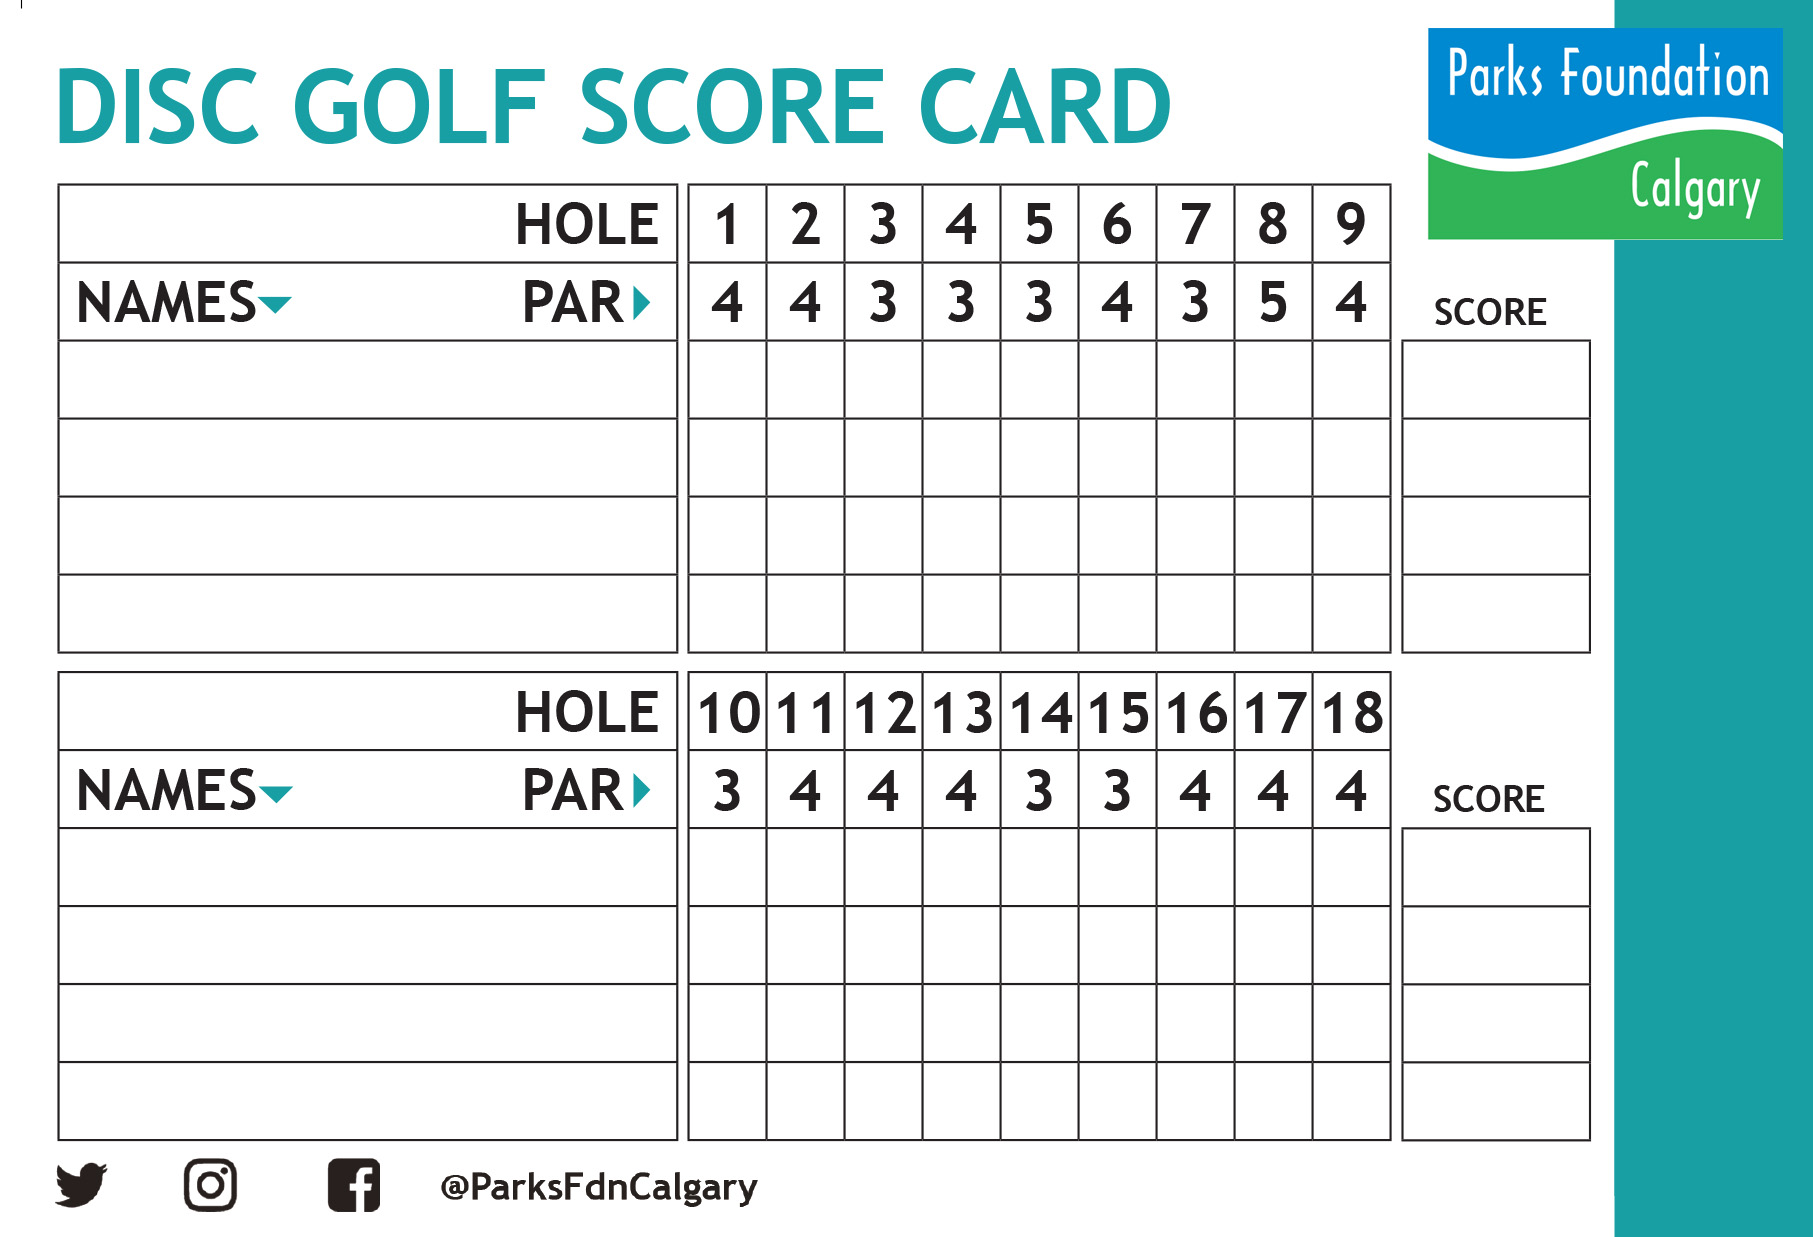 photograph regarding Disc Golf Scorecard Printable referred to as Disc Golfing Scorecard Printable